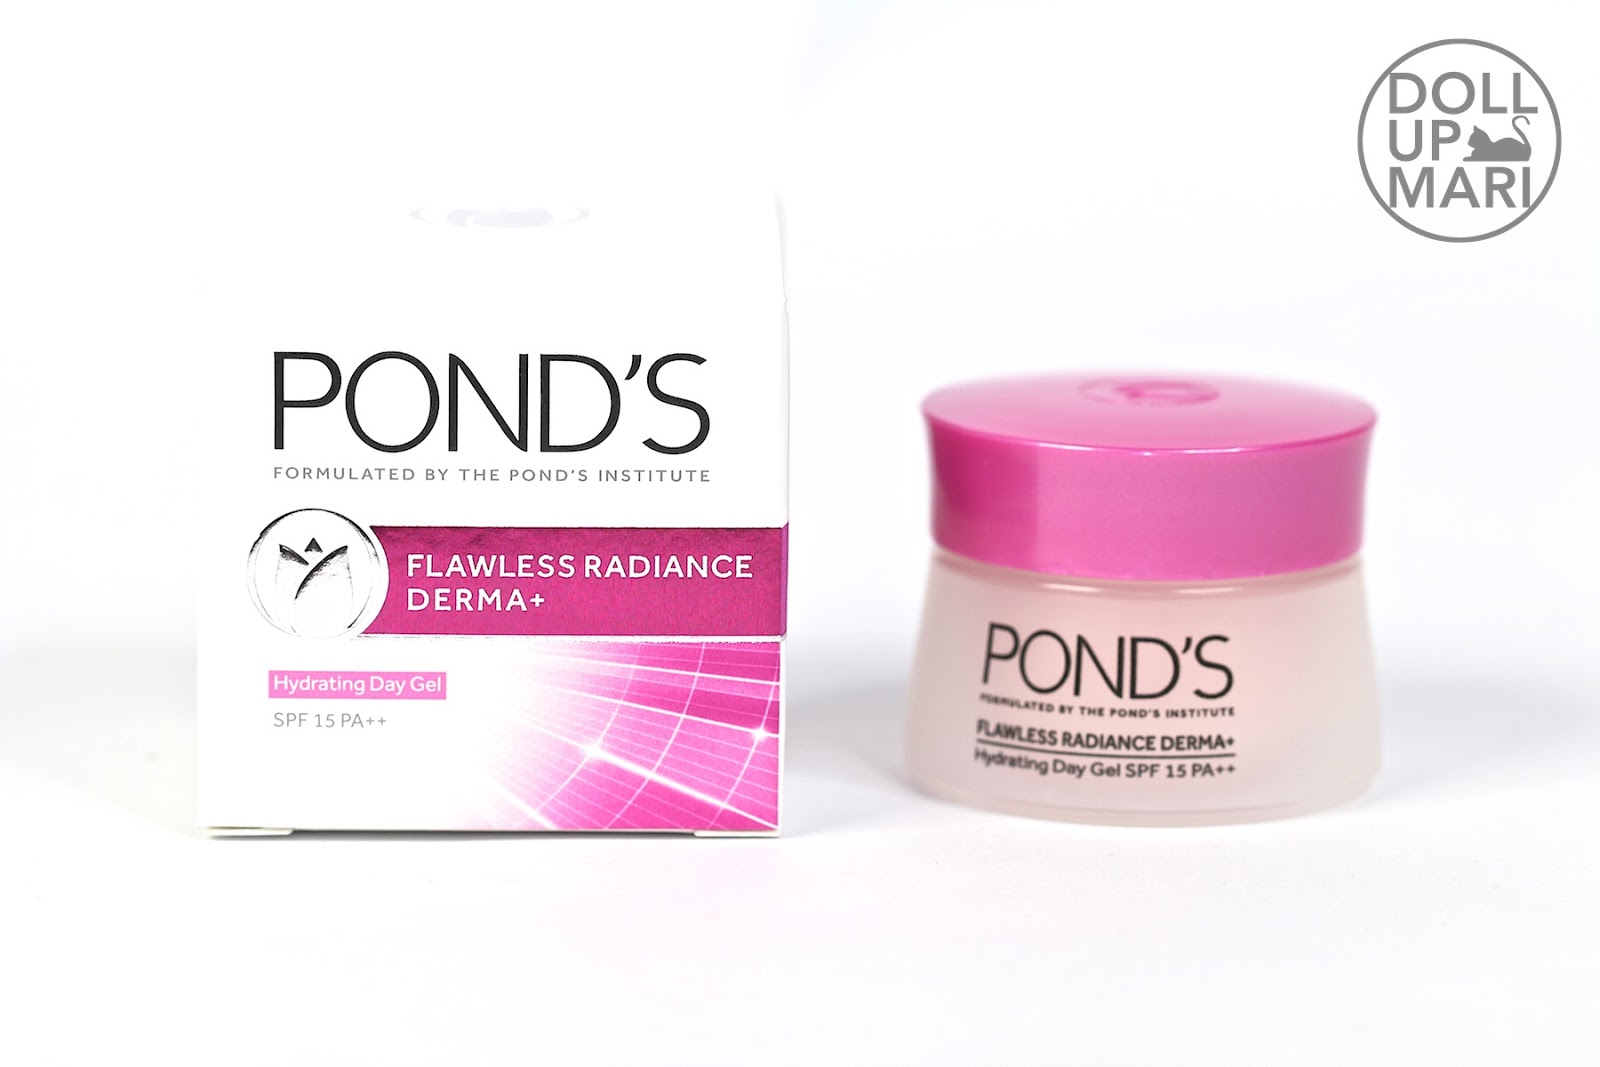 Ponds Flawless Radiance Derma Now At Sample Room Doll Up Mari Daily Moist 50g Hydrating Day Gel